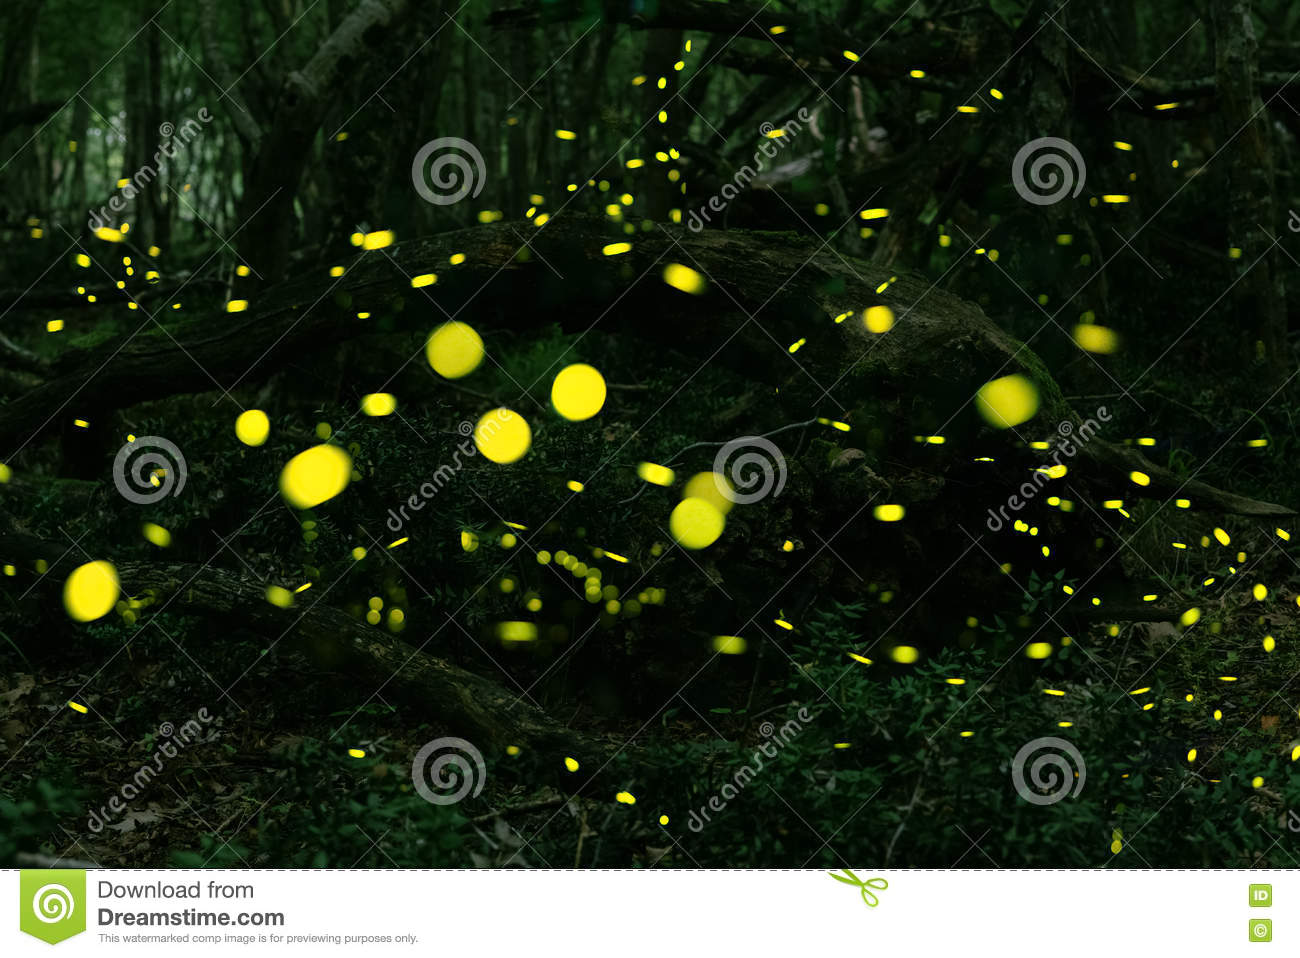 Fireflies at forest near Burgas, Bulgaria